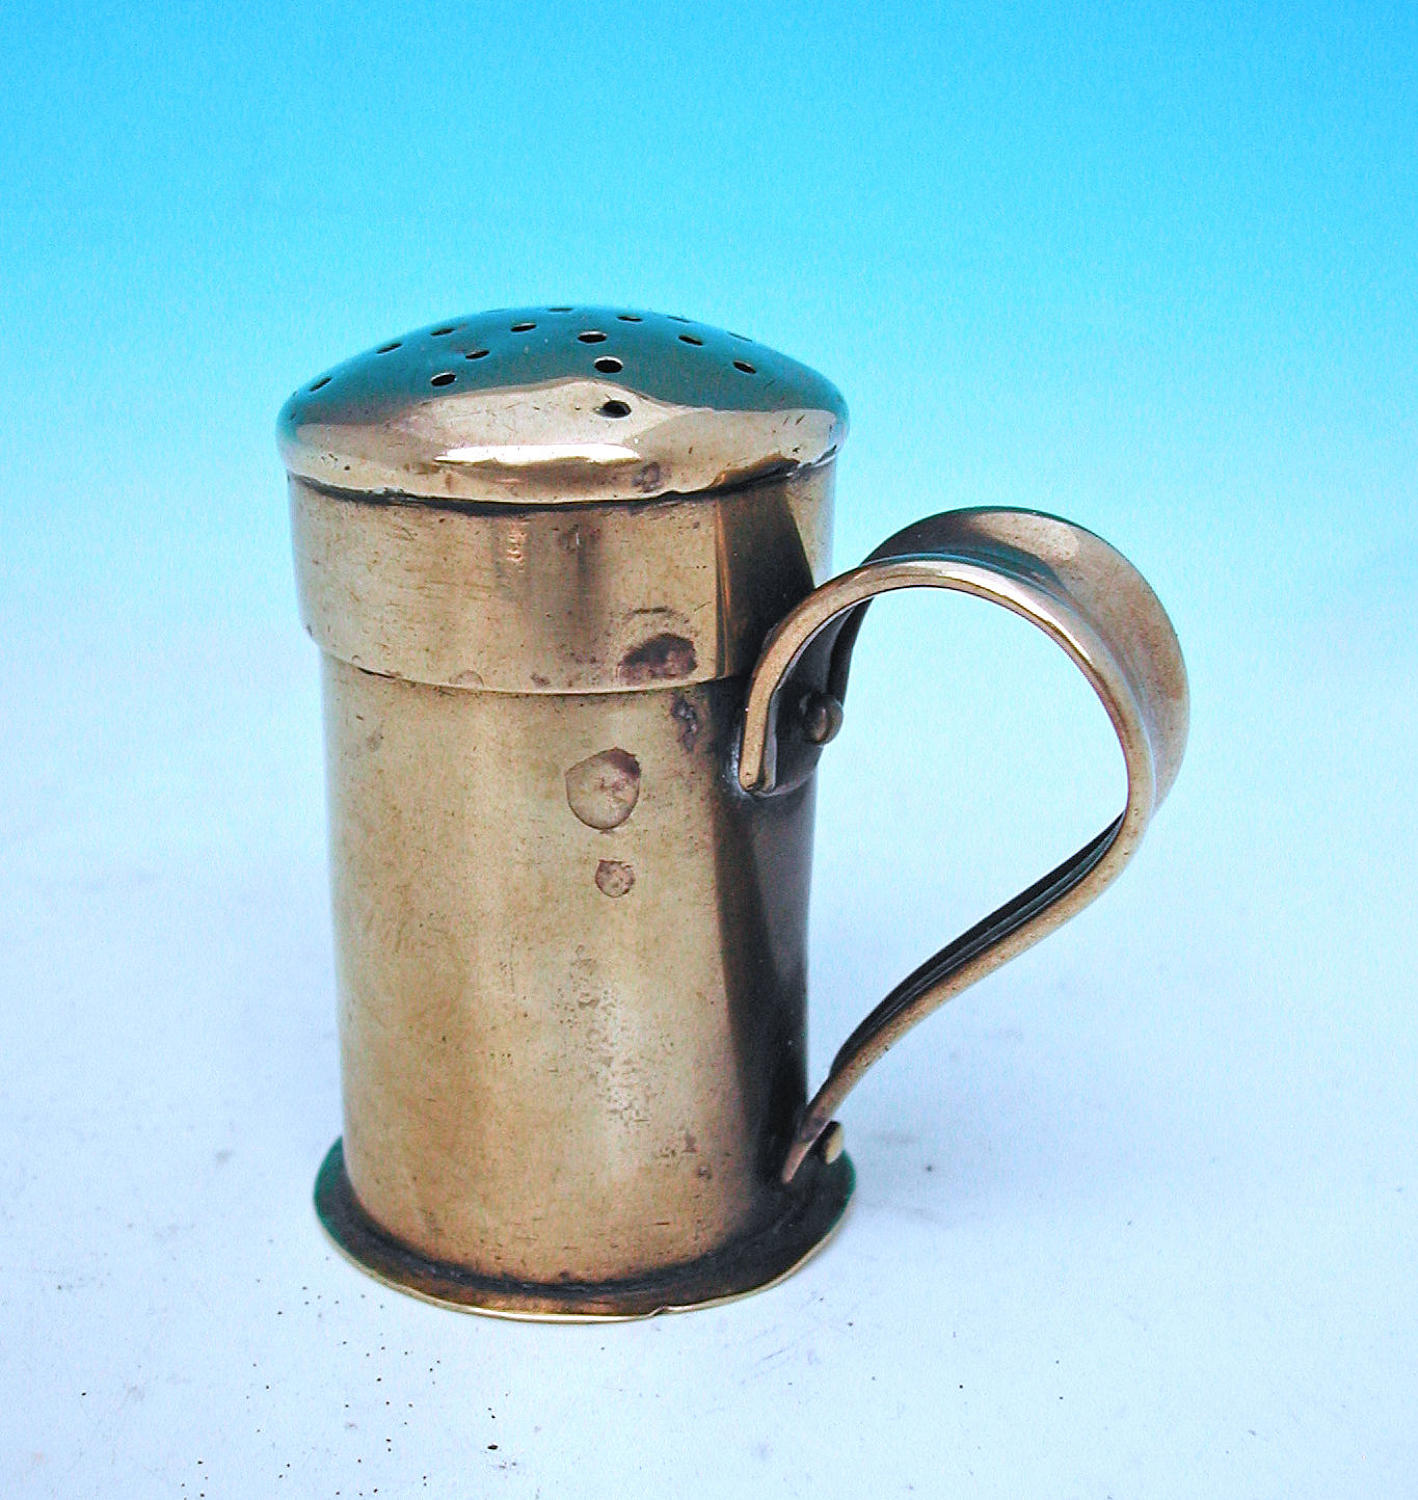 Early 19thc Brass Flour / Spice Dredger.  English. C1800-20.